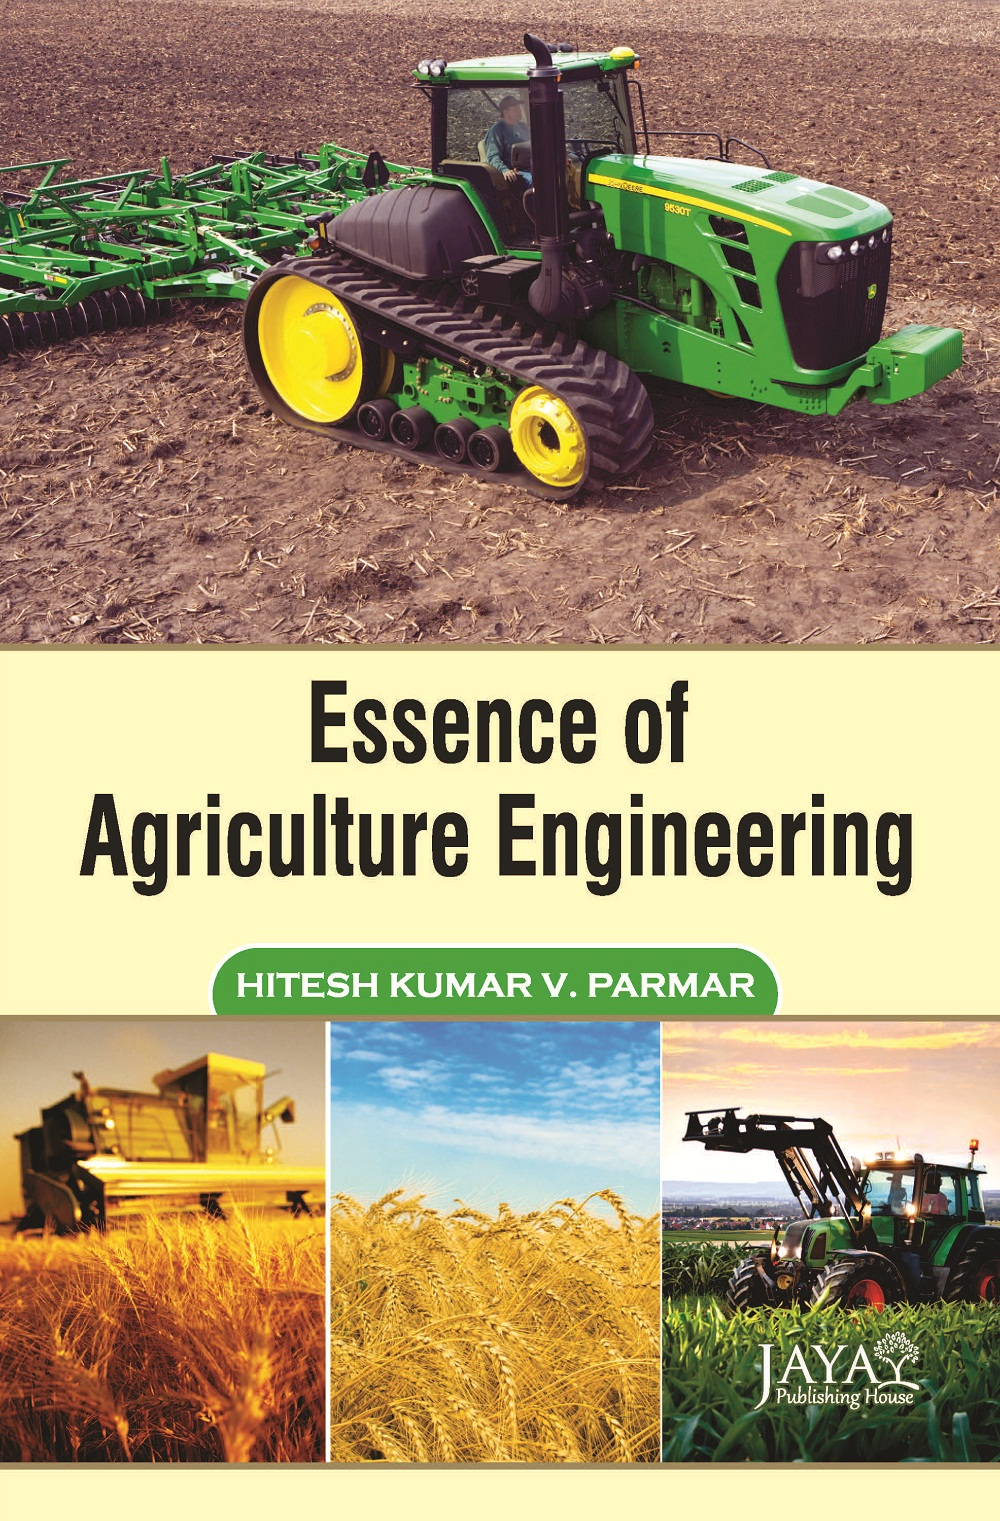 Essence of Agriculture Engineering